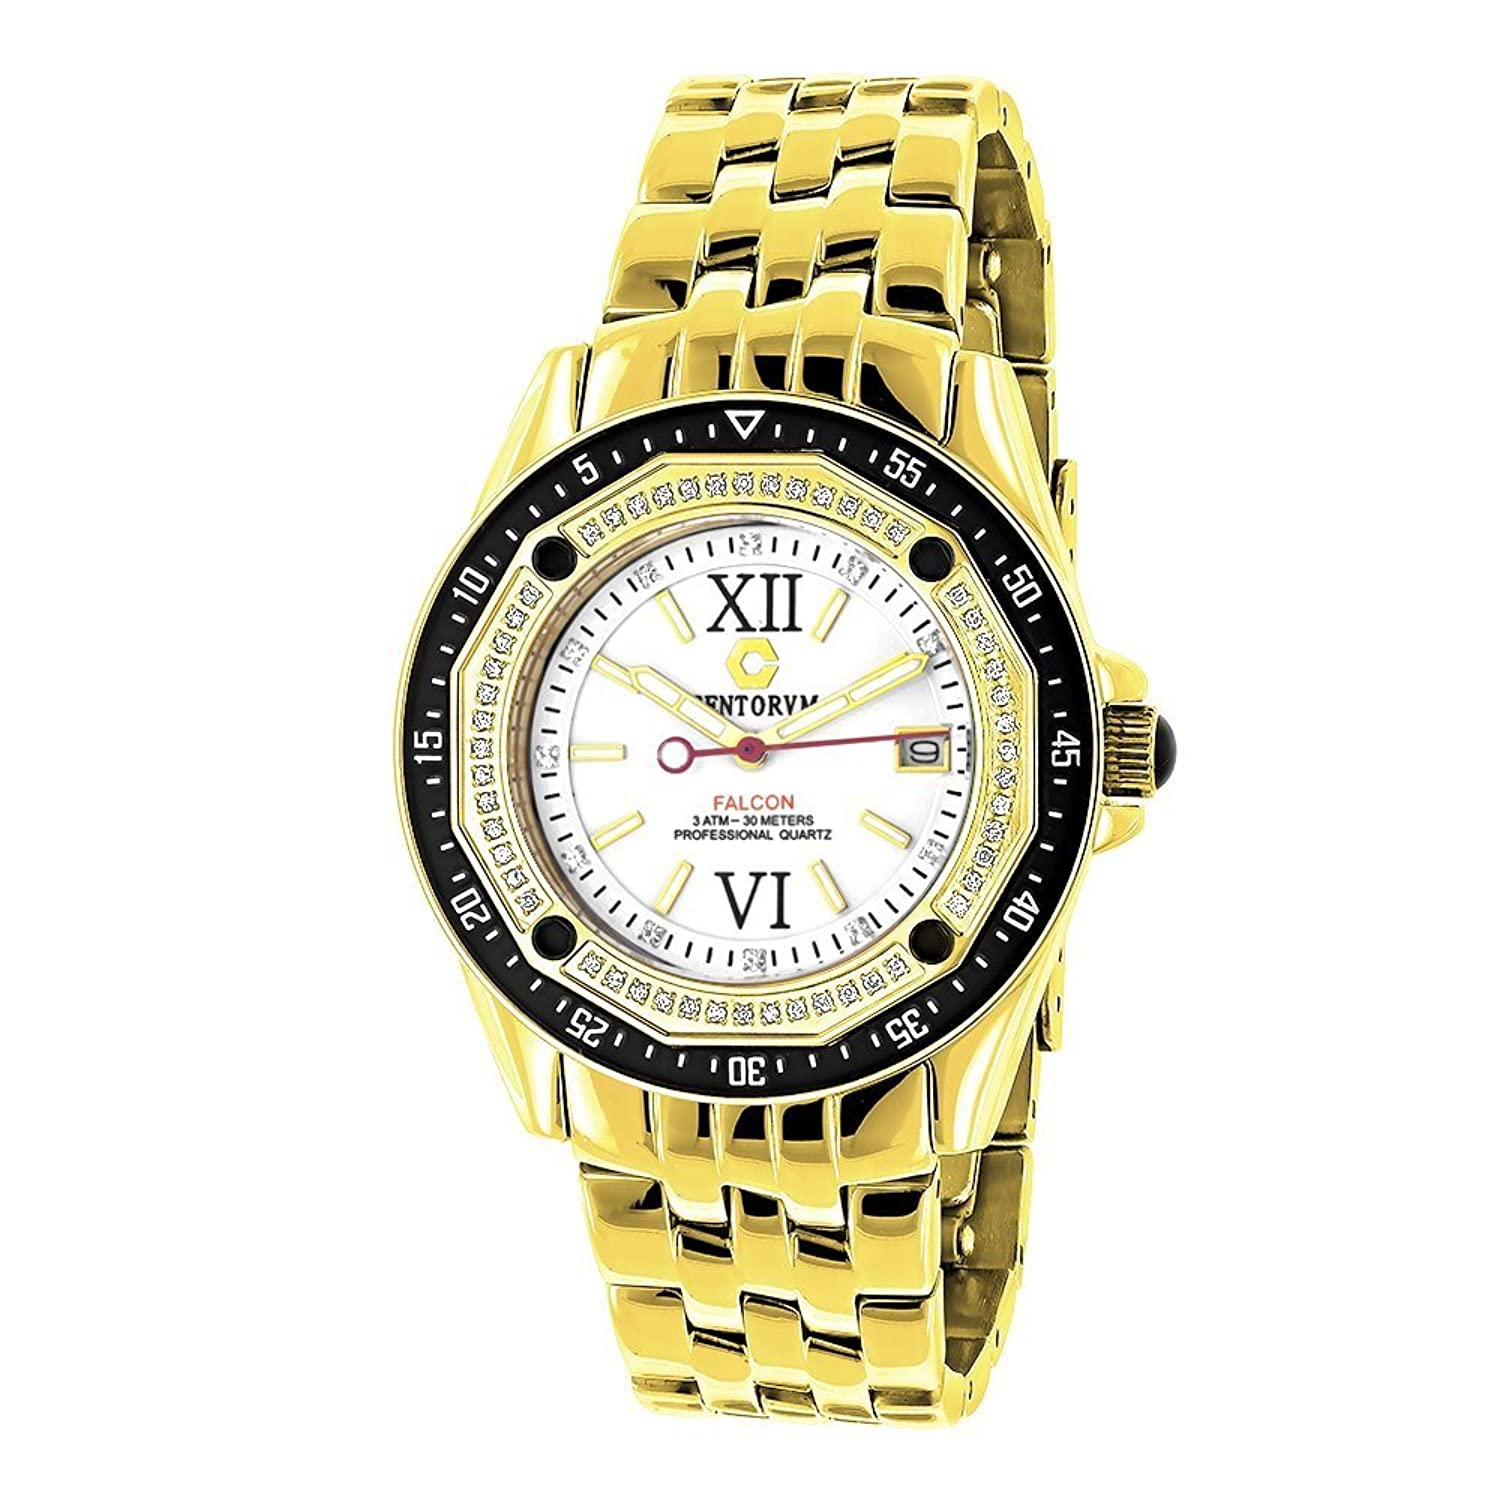 Centorum Watches: Midsize Falcon Diamond Watch 0.5ct